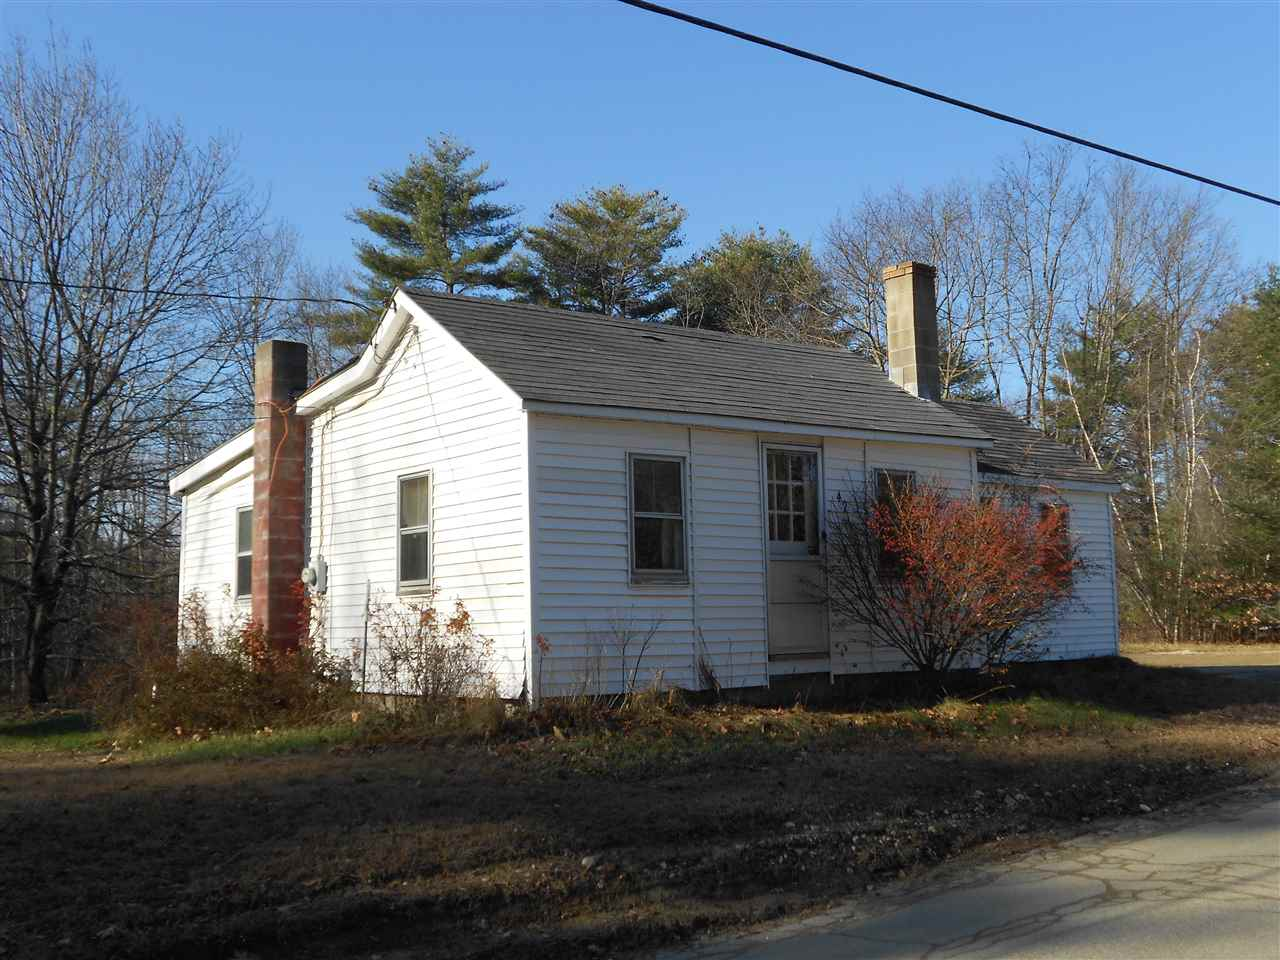 NEW DURHAM NH  Home for sale $89,900